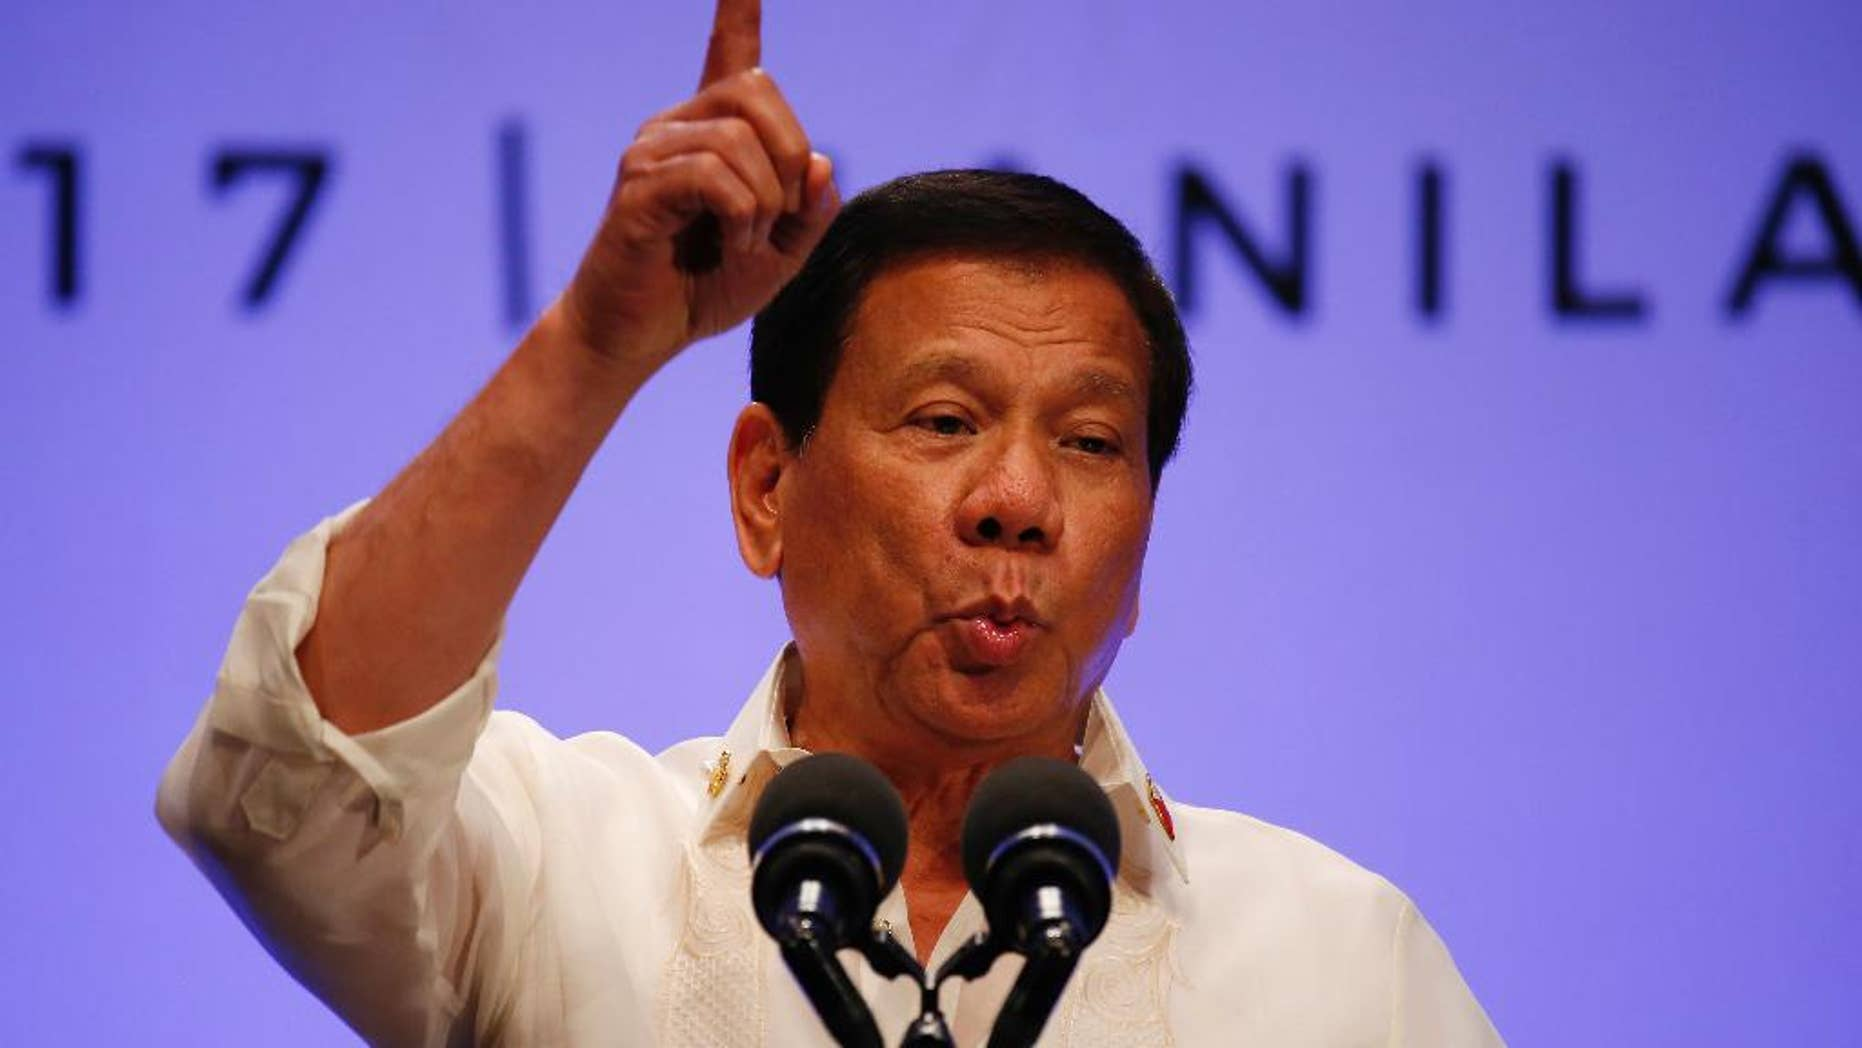 """Philippines President Rodrigo Duterte gestures while addressing the media following the conclusion of the 30th ASEAN Leaders' Summit in Manila, Philippines, Saturday, April 29, 2017. Duterte suggested Saturday to his American counterpart to back out from an intensifying standoff with North Korea not in surrender but to avoid risking a nuclear """"holocaust"""" that could affect Asia immensely. (AP Photo/Bullit Marquez)"""